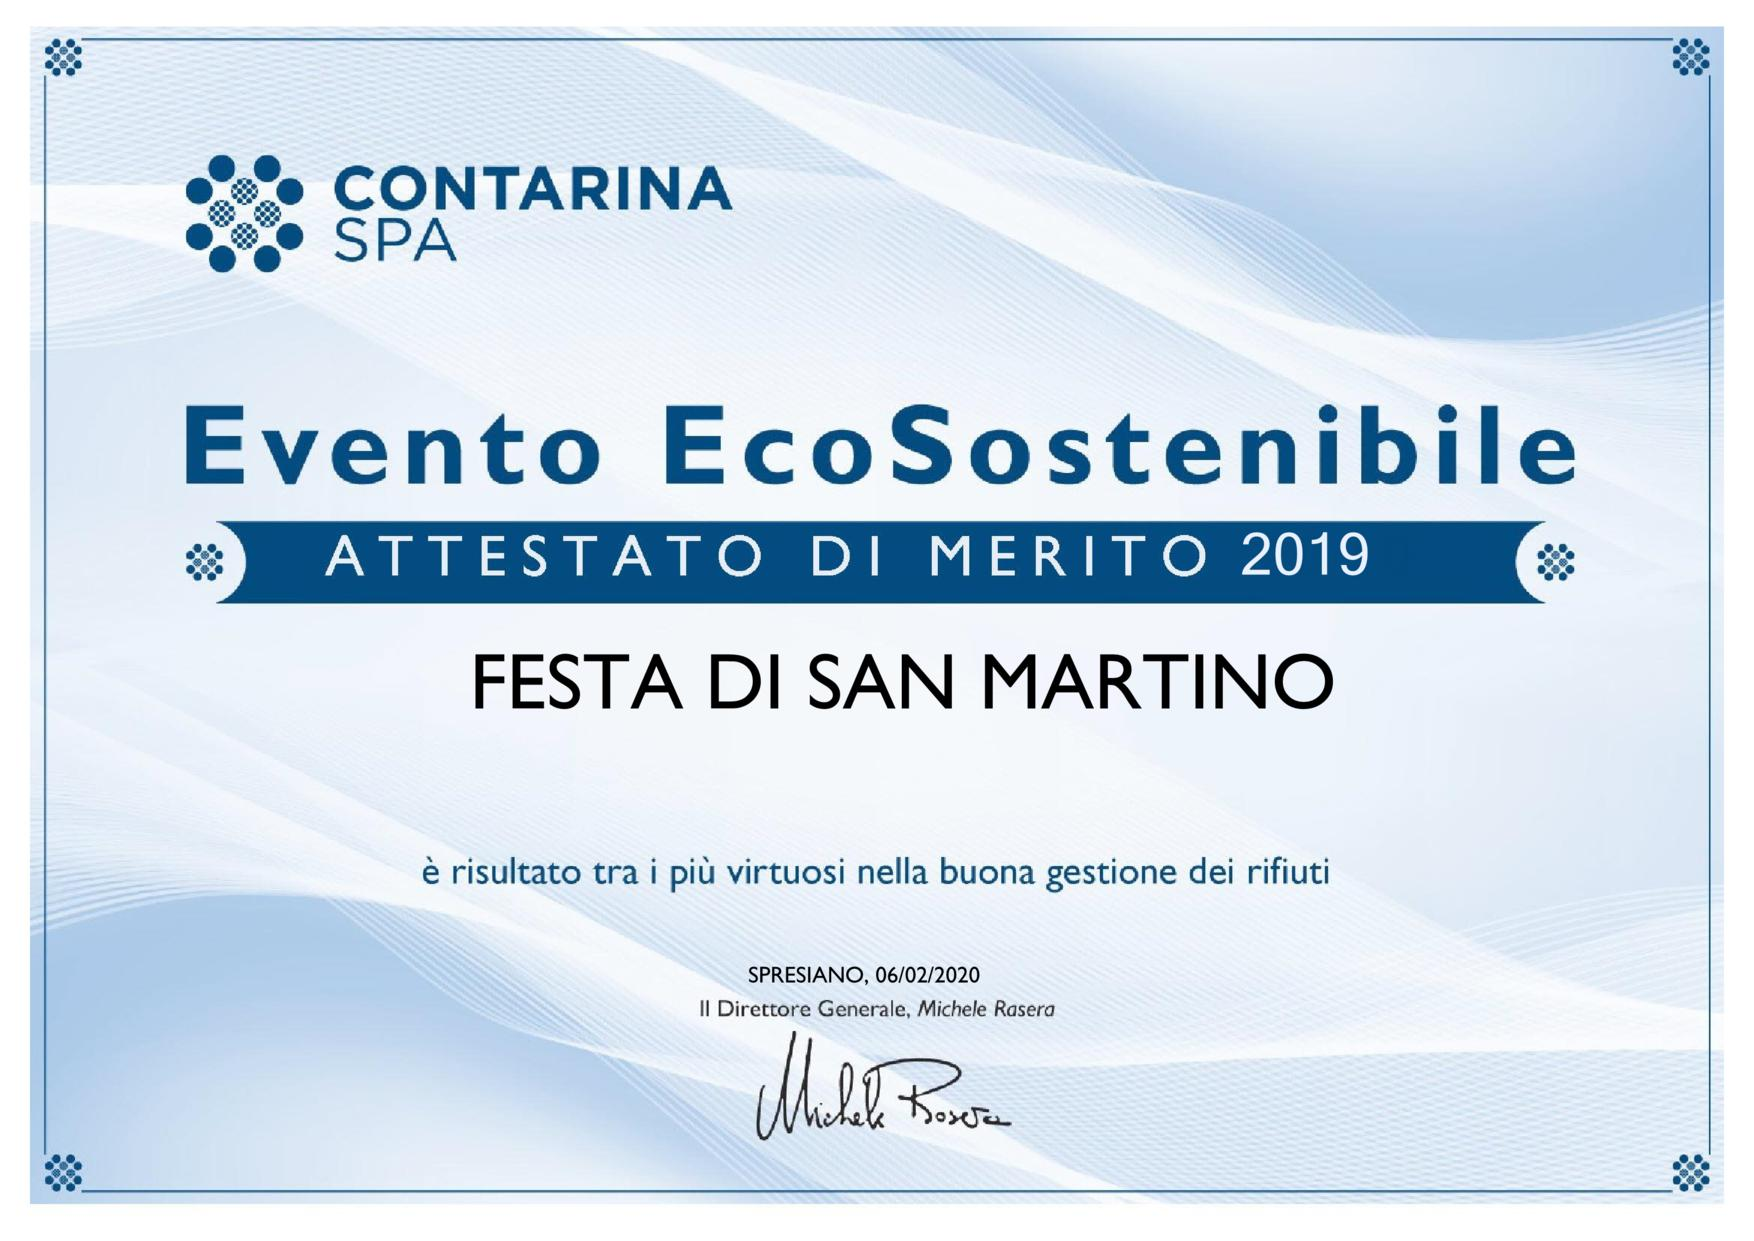 Attestato Evento EcoSostenibile